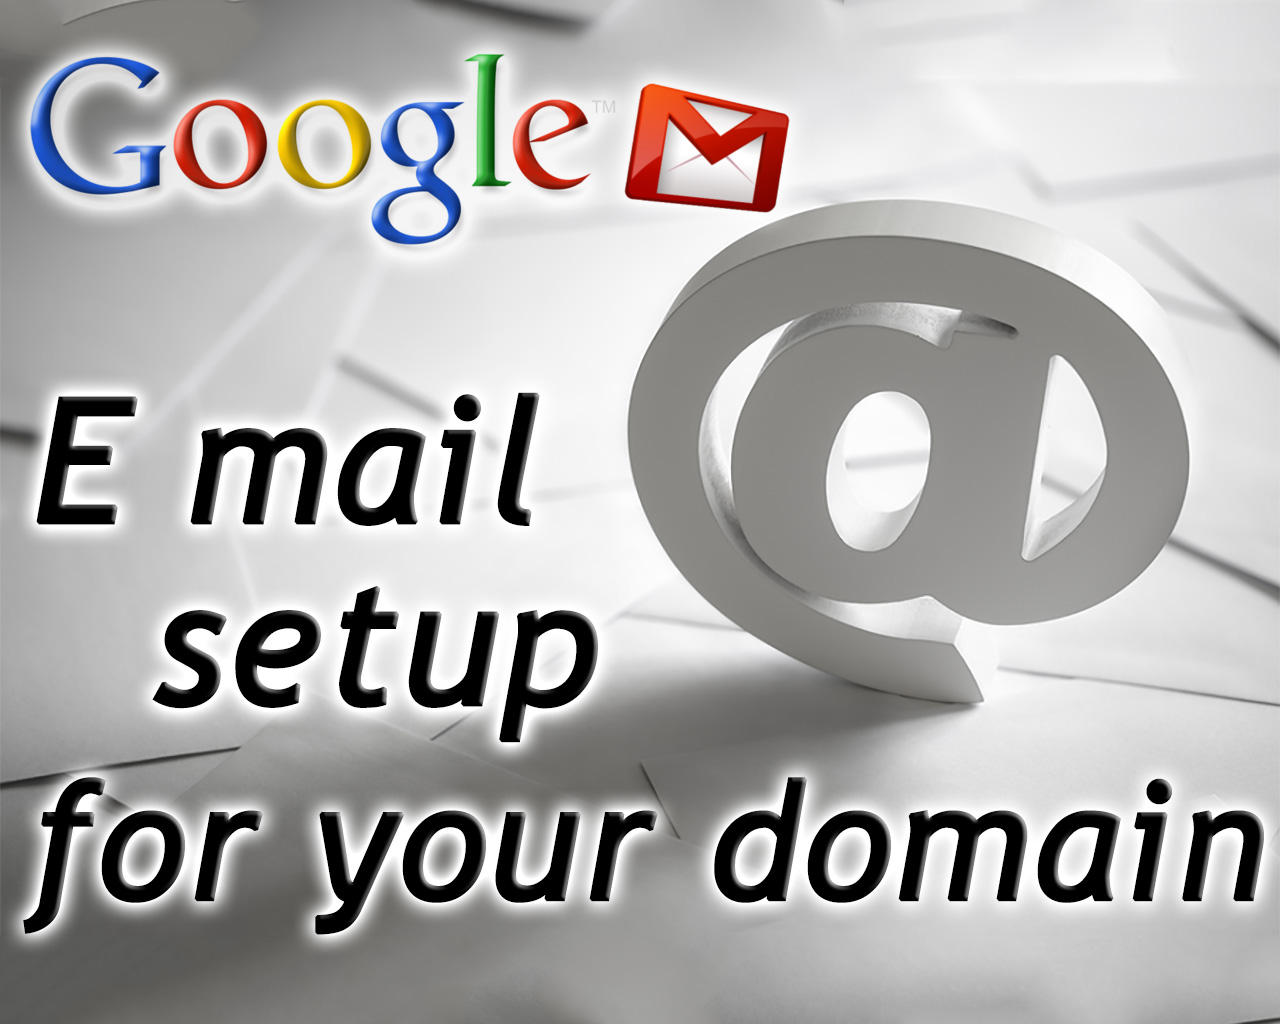 Google apps E Mail Setup for a Domain by Dimitris73 - 102454